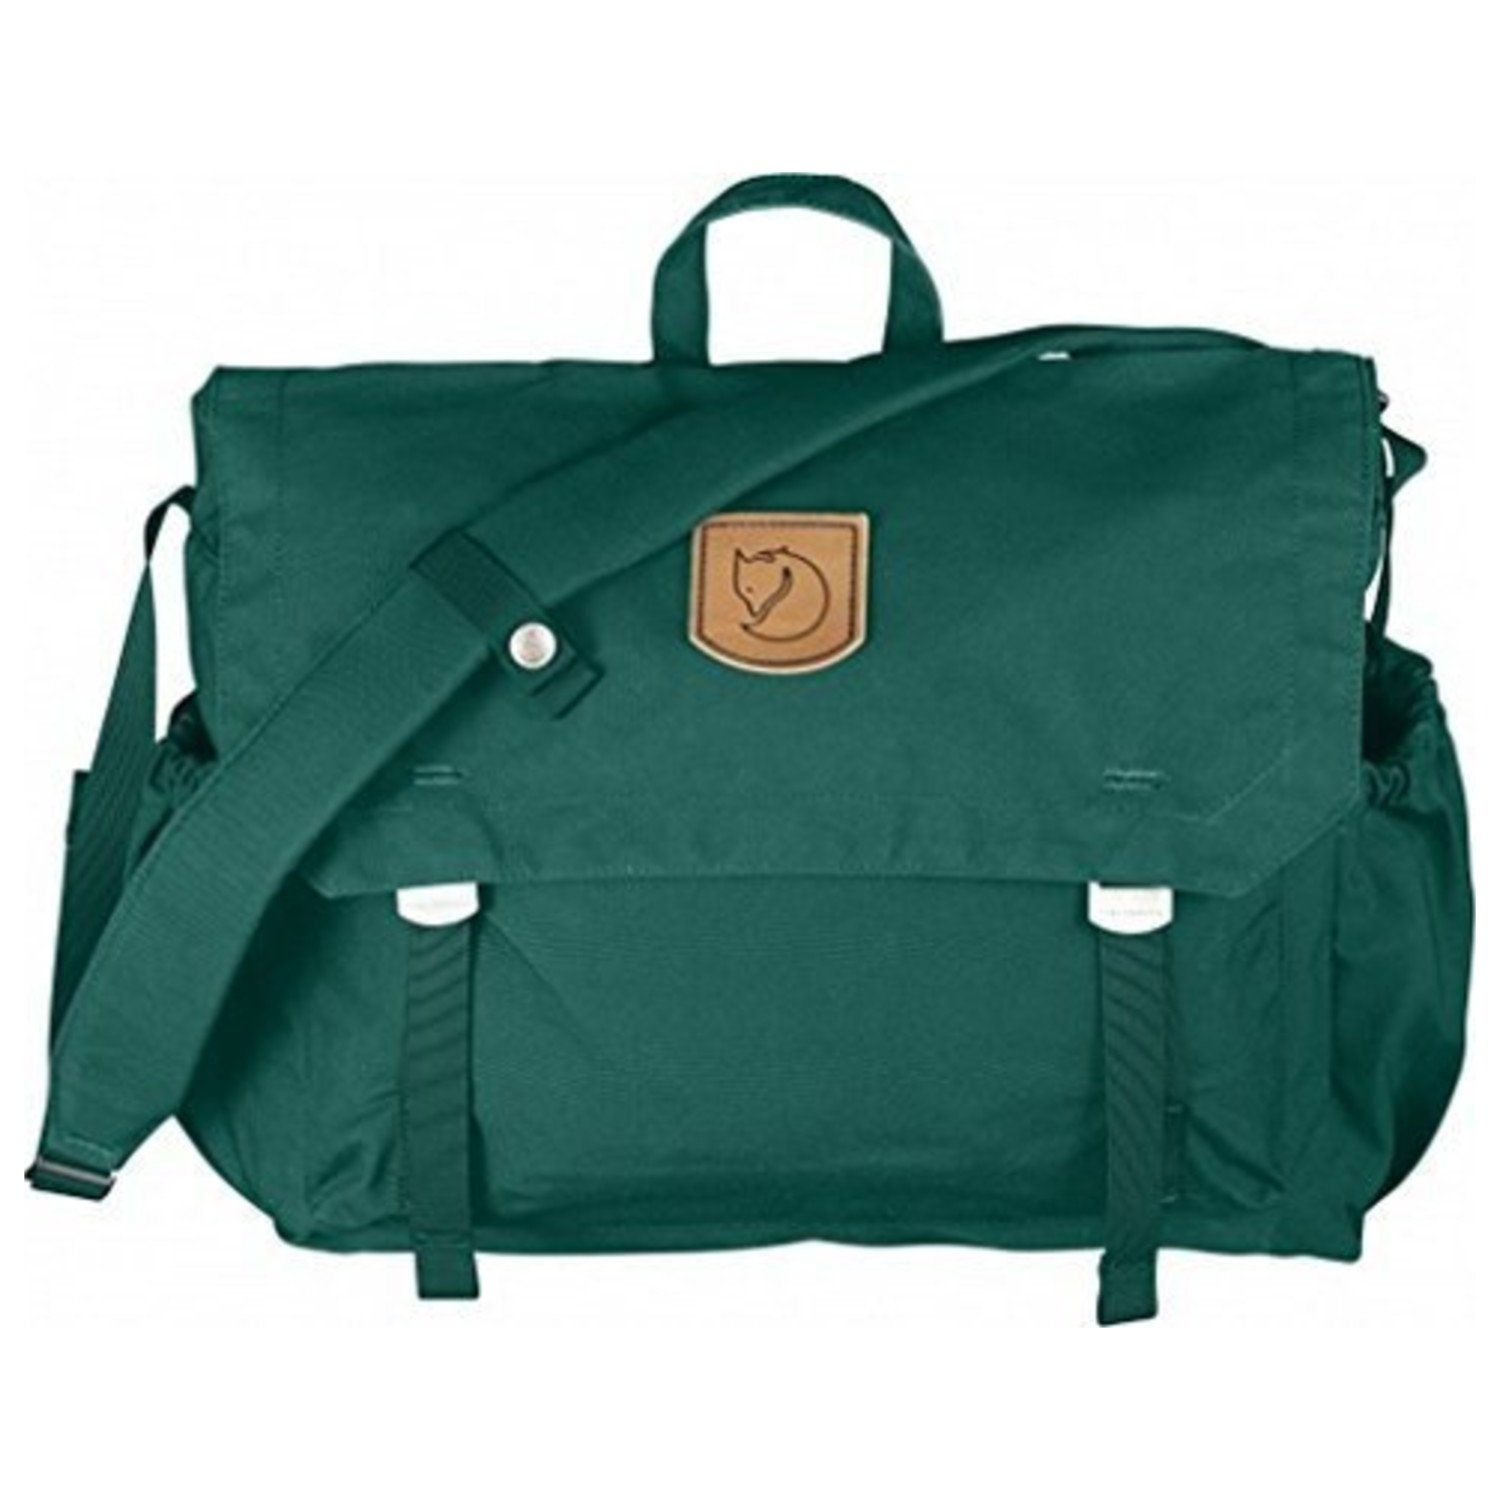 Fjallraven No. 2 Fold Sack, Copper Green by Fjallraven